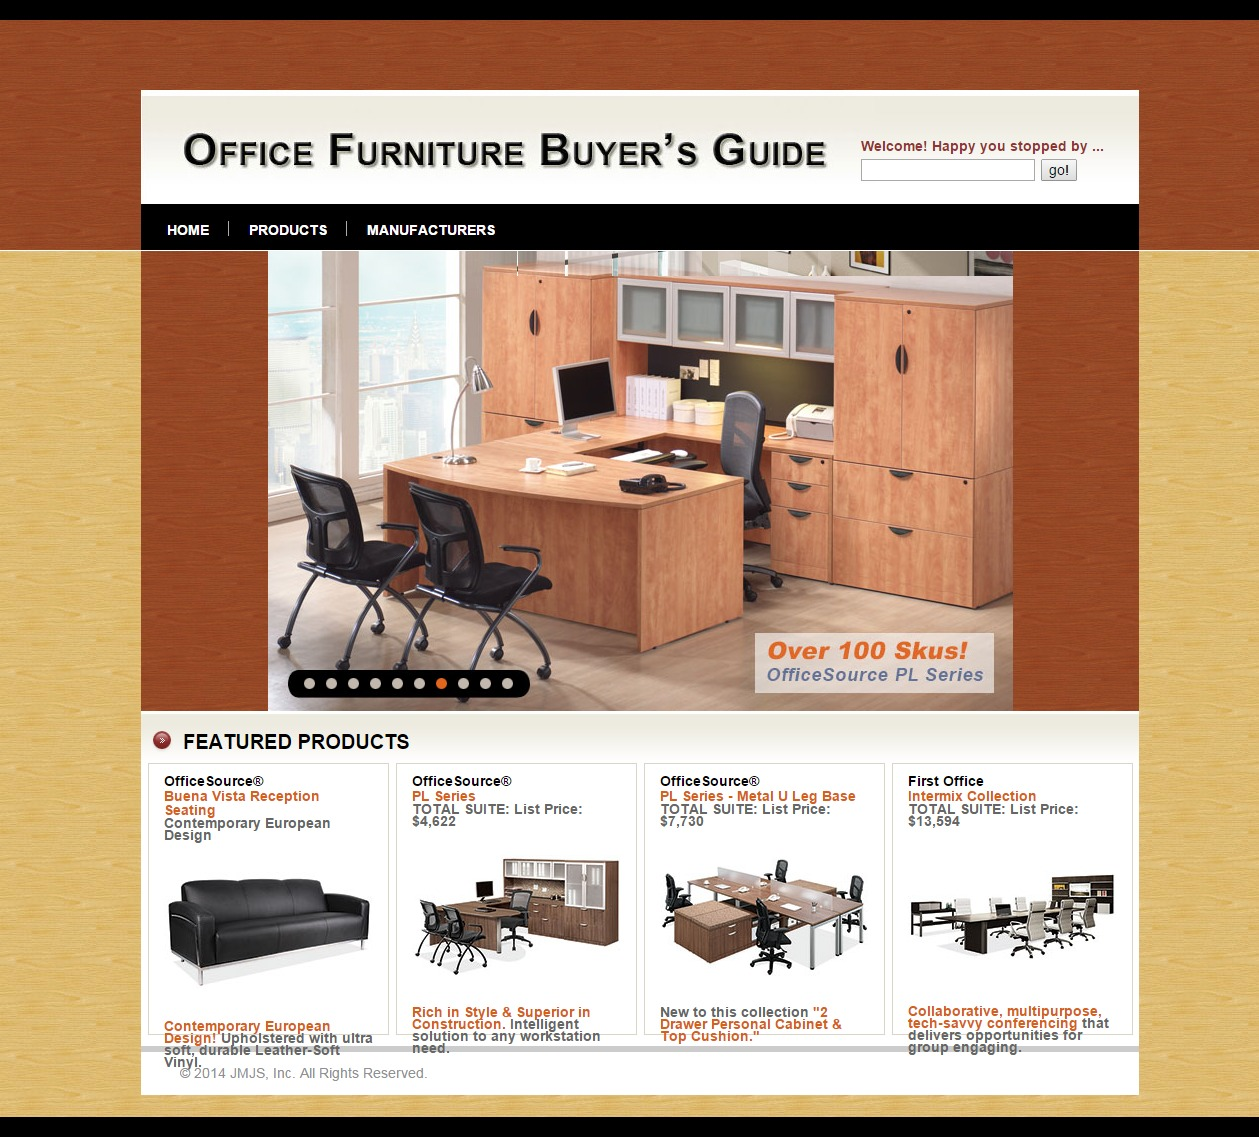 Office Furniture Buyer's Guide